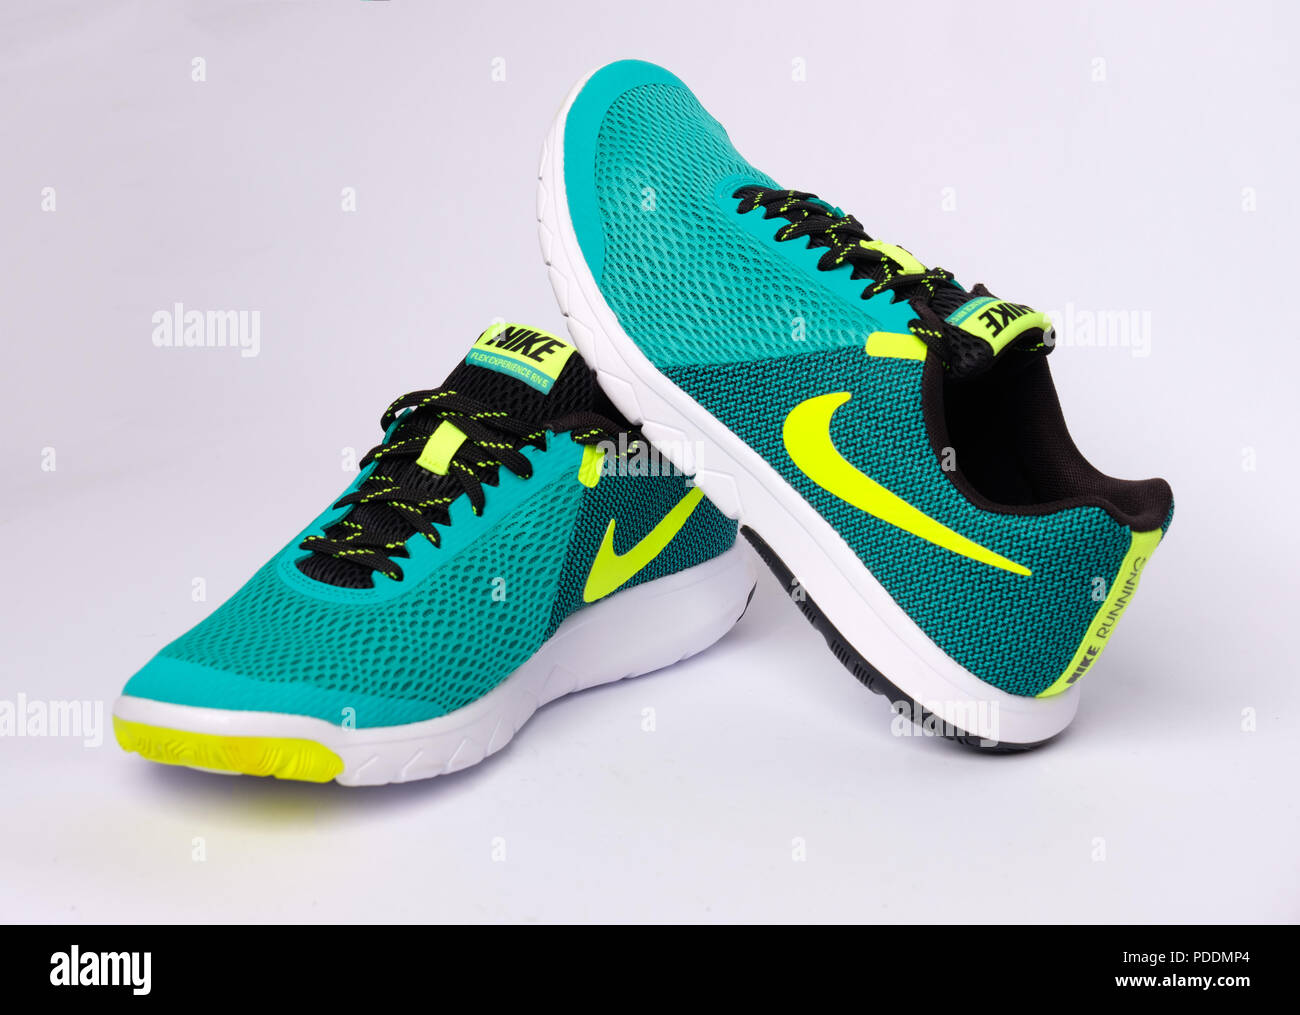 quality design 2532e 5480a Pair of green Nike Flex Experience RN 5 running shoes cut out isolated on white  background